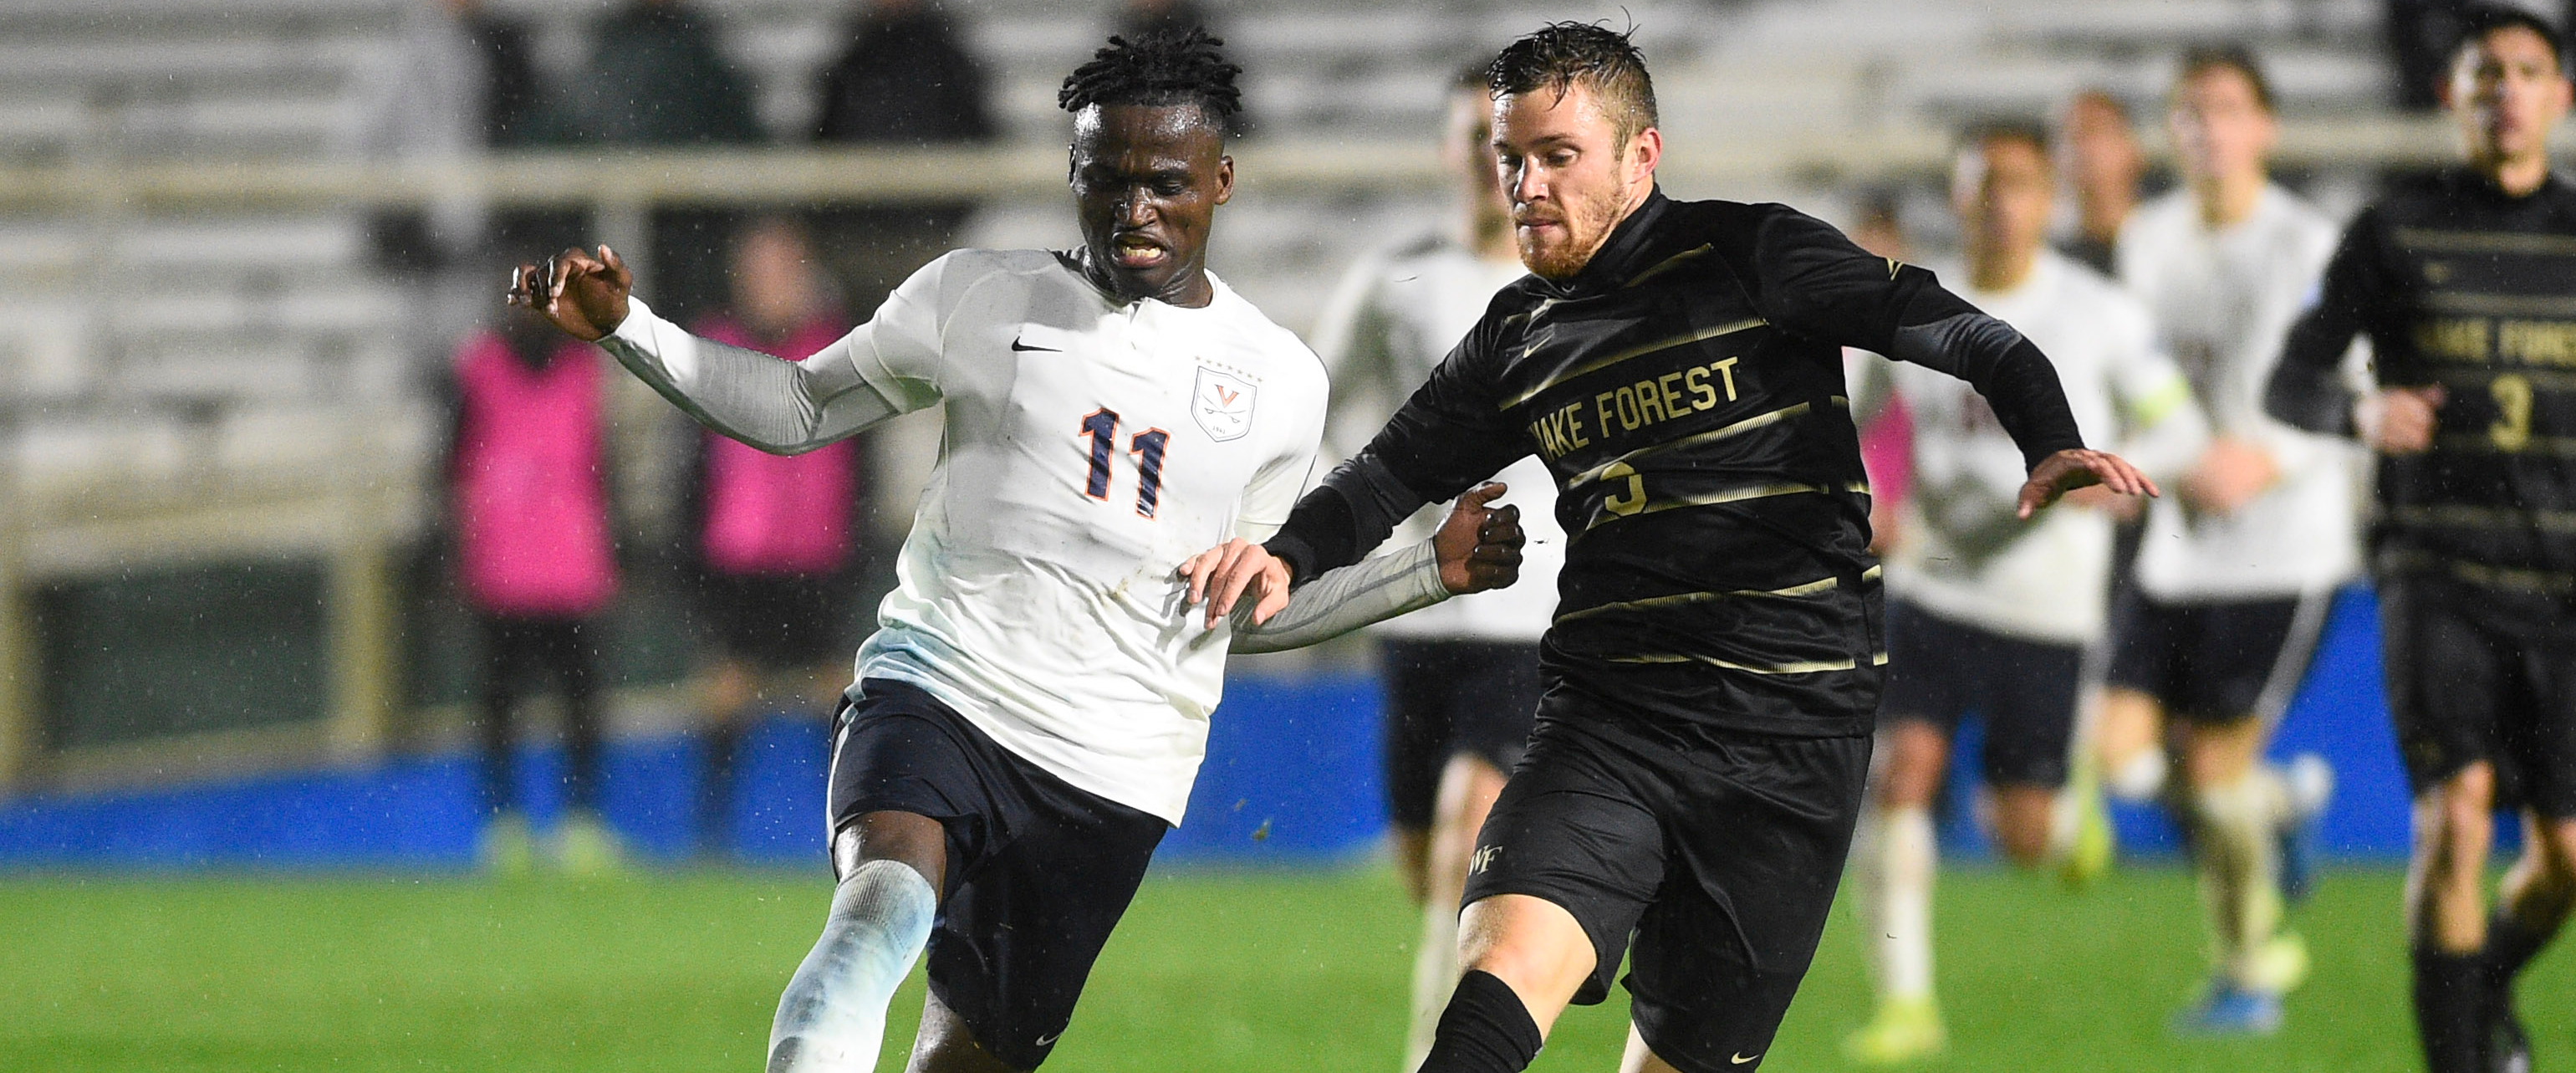 Getting to know Nashville SC's 2021 draft class